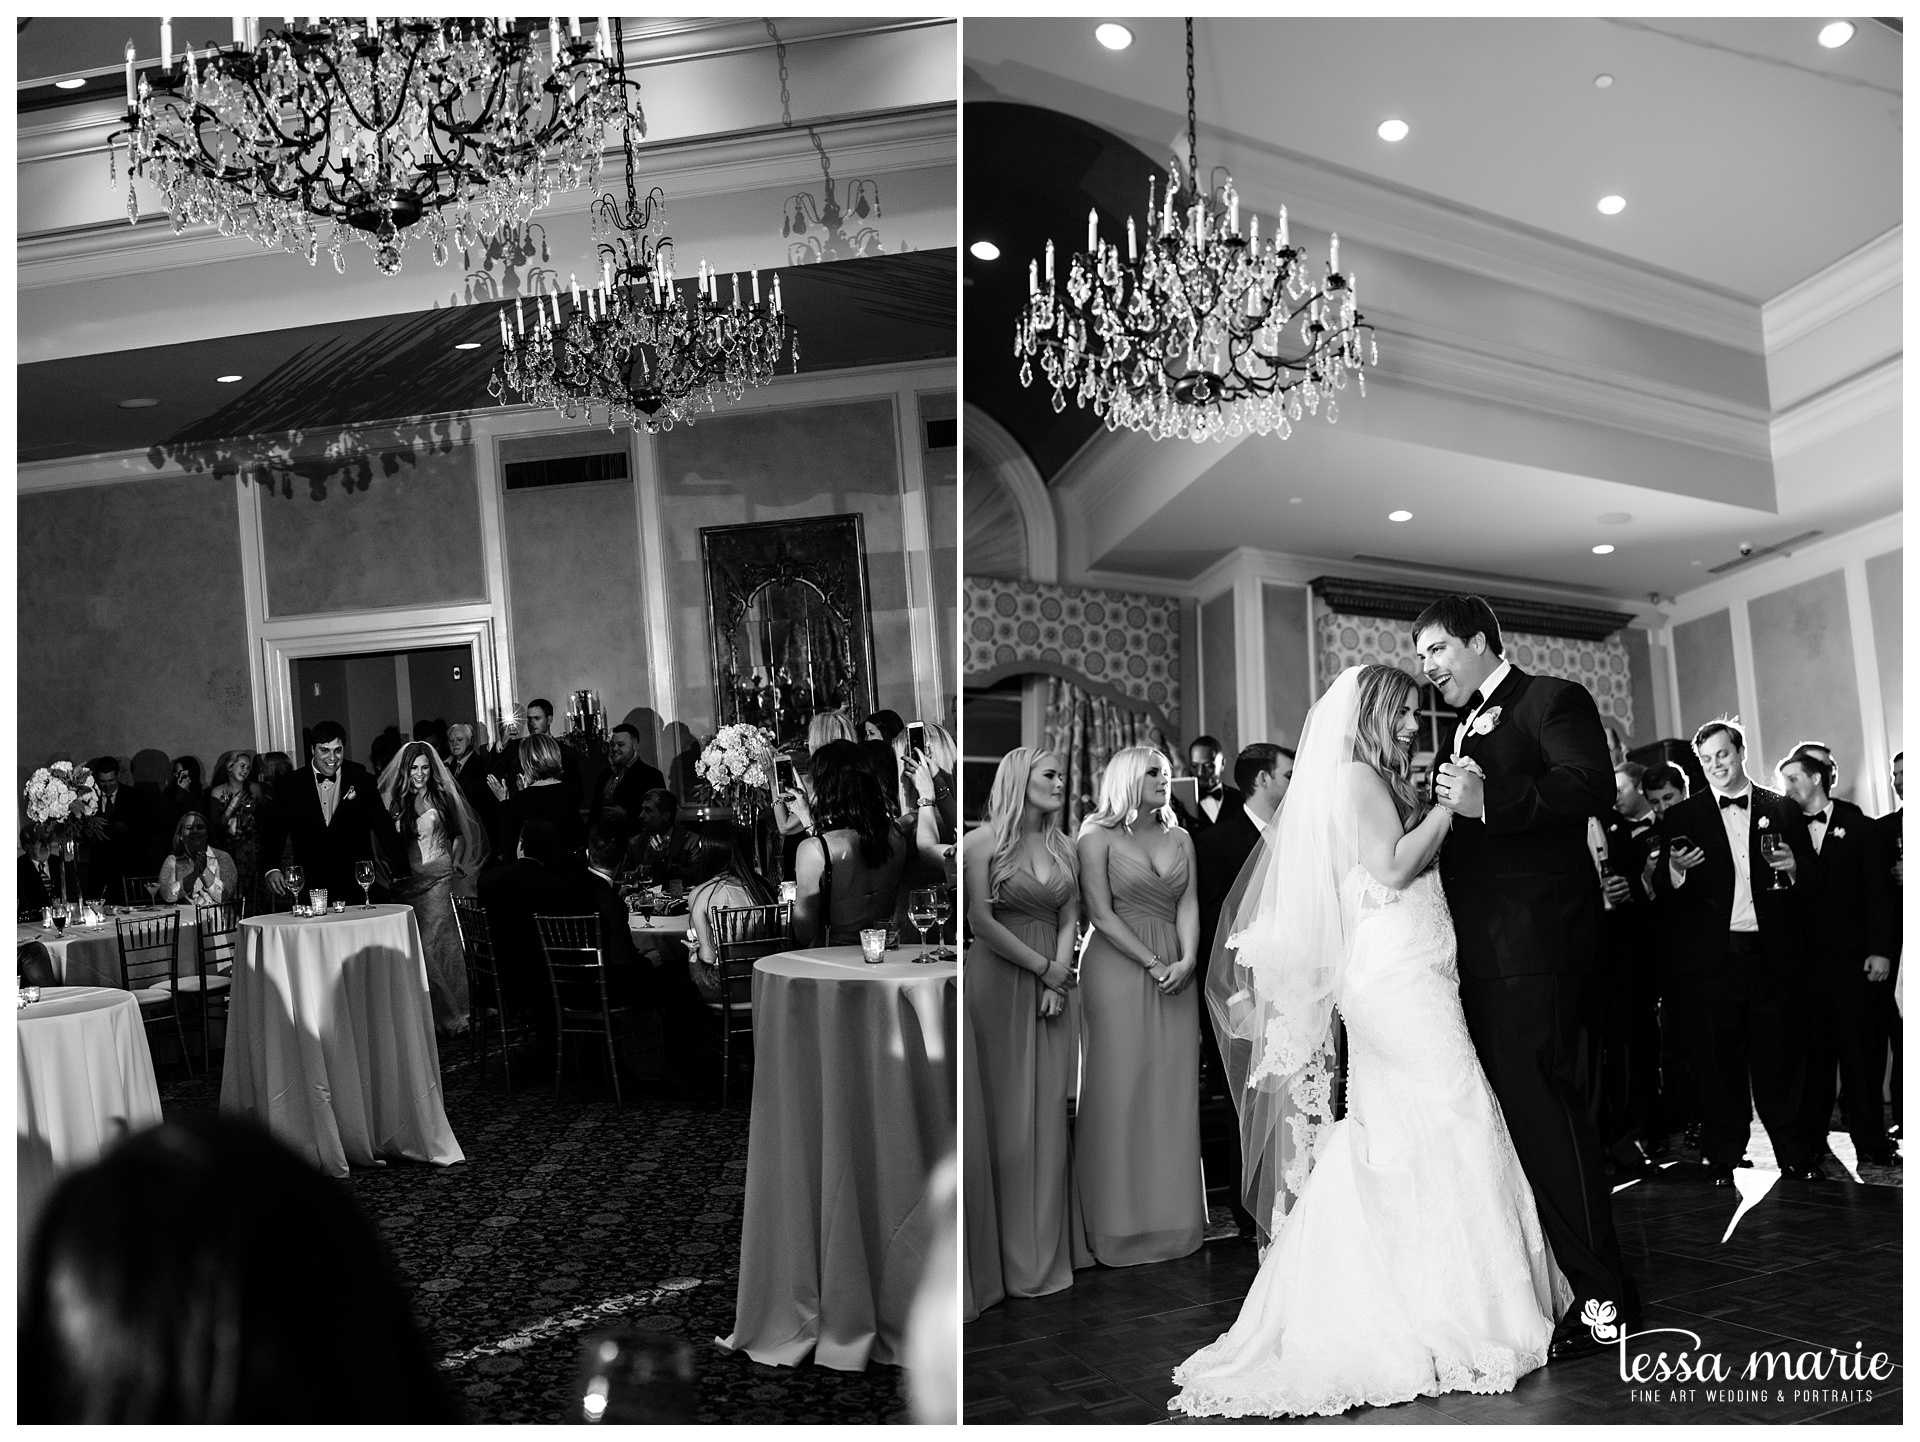 tessa_marie_weddings_legacy_story_focused_wedding_pictures_atlanta_wedding_photographer_0143